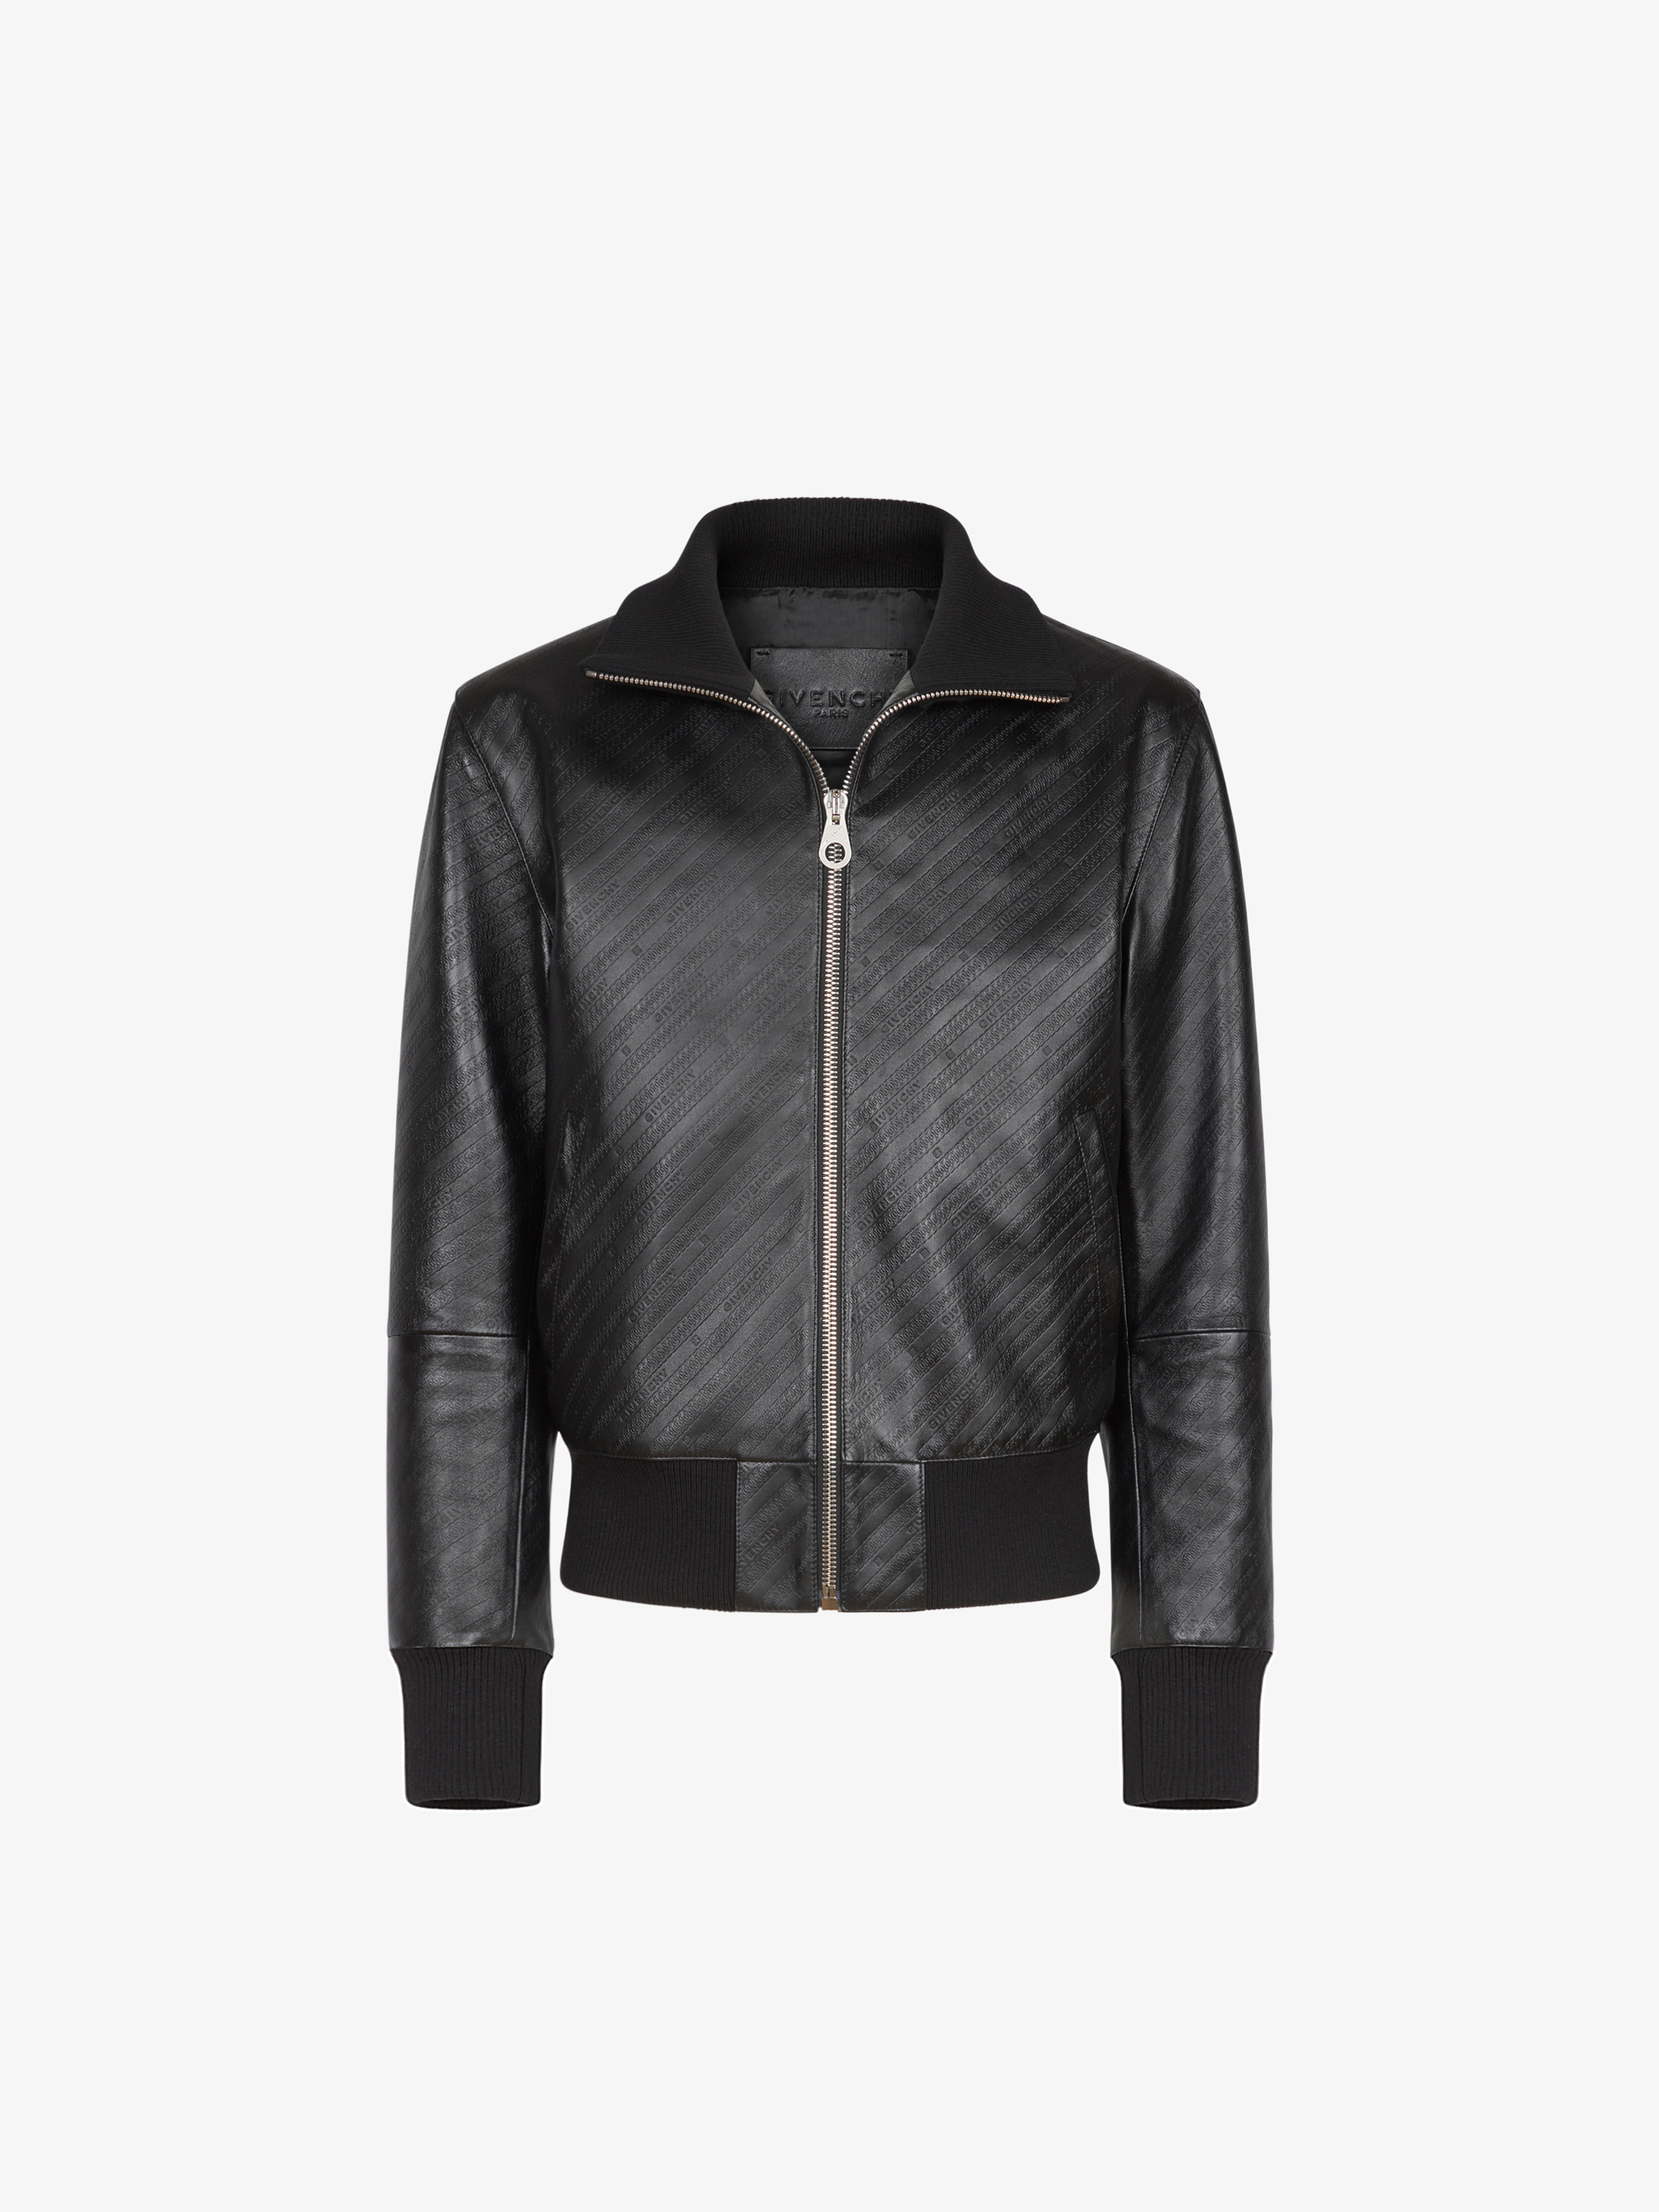 GIVENCHY chain bomber in embossed leather